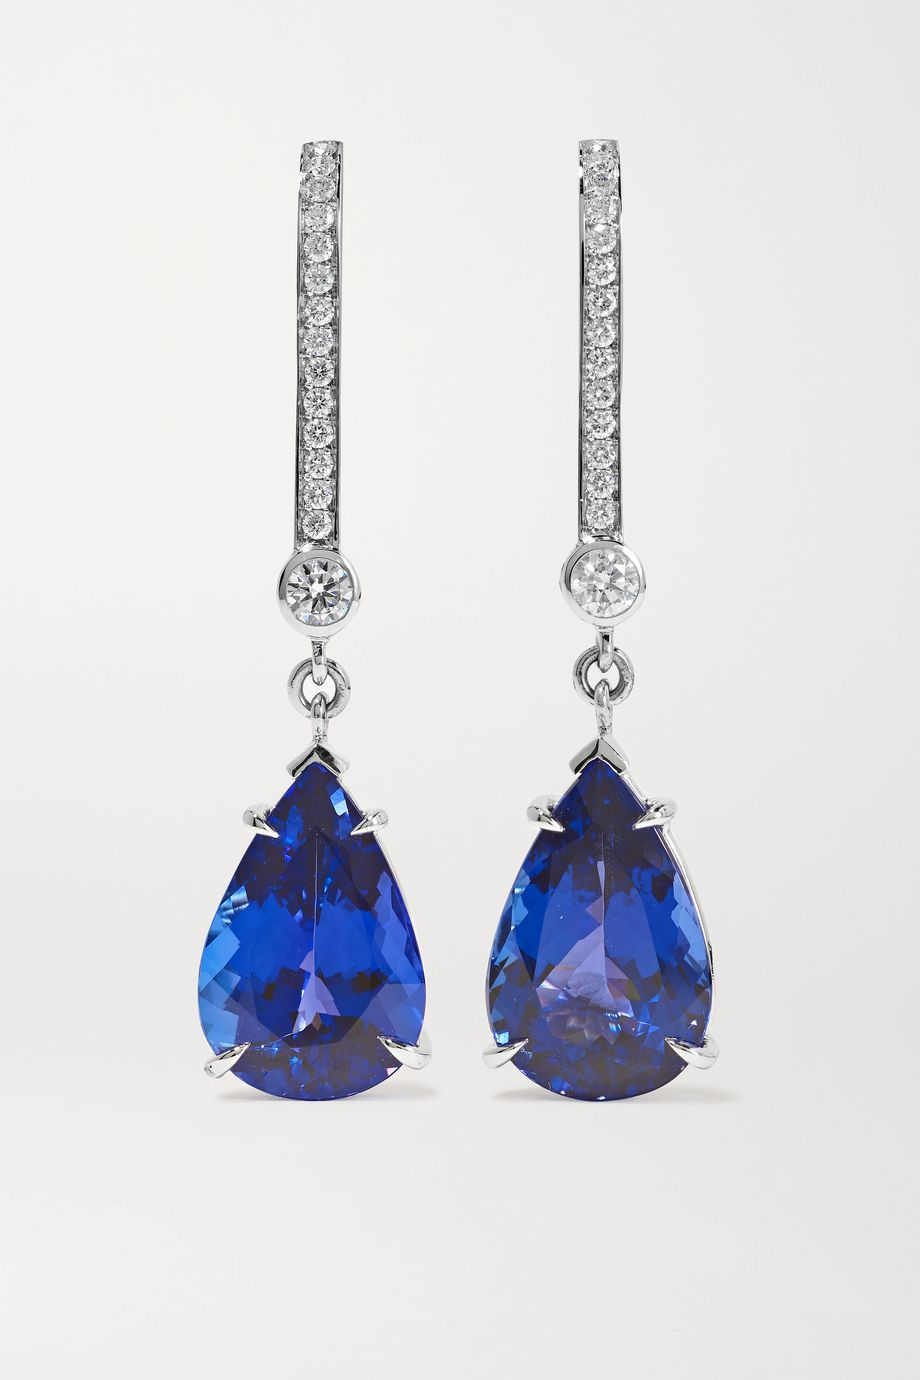 Ara Vartanian 18-karat white gold, tanzanite and diamond earrings